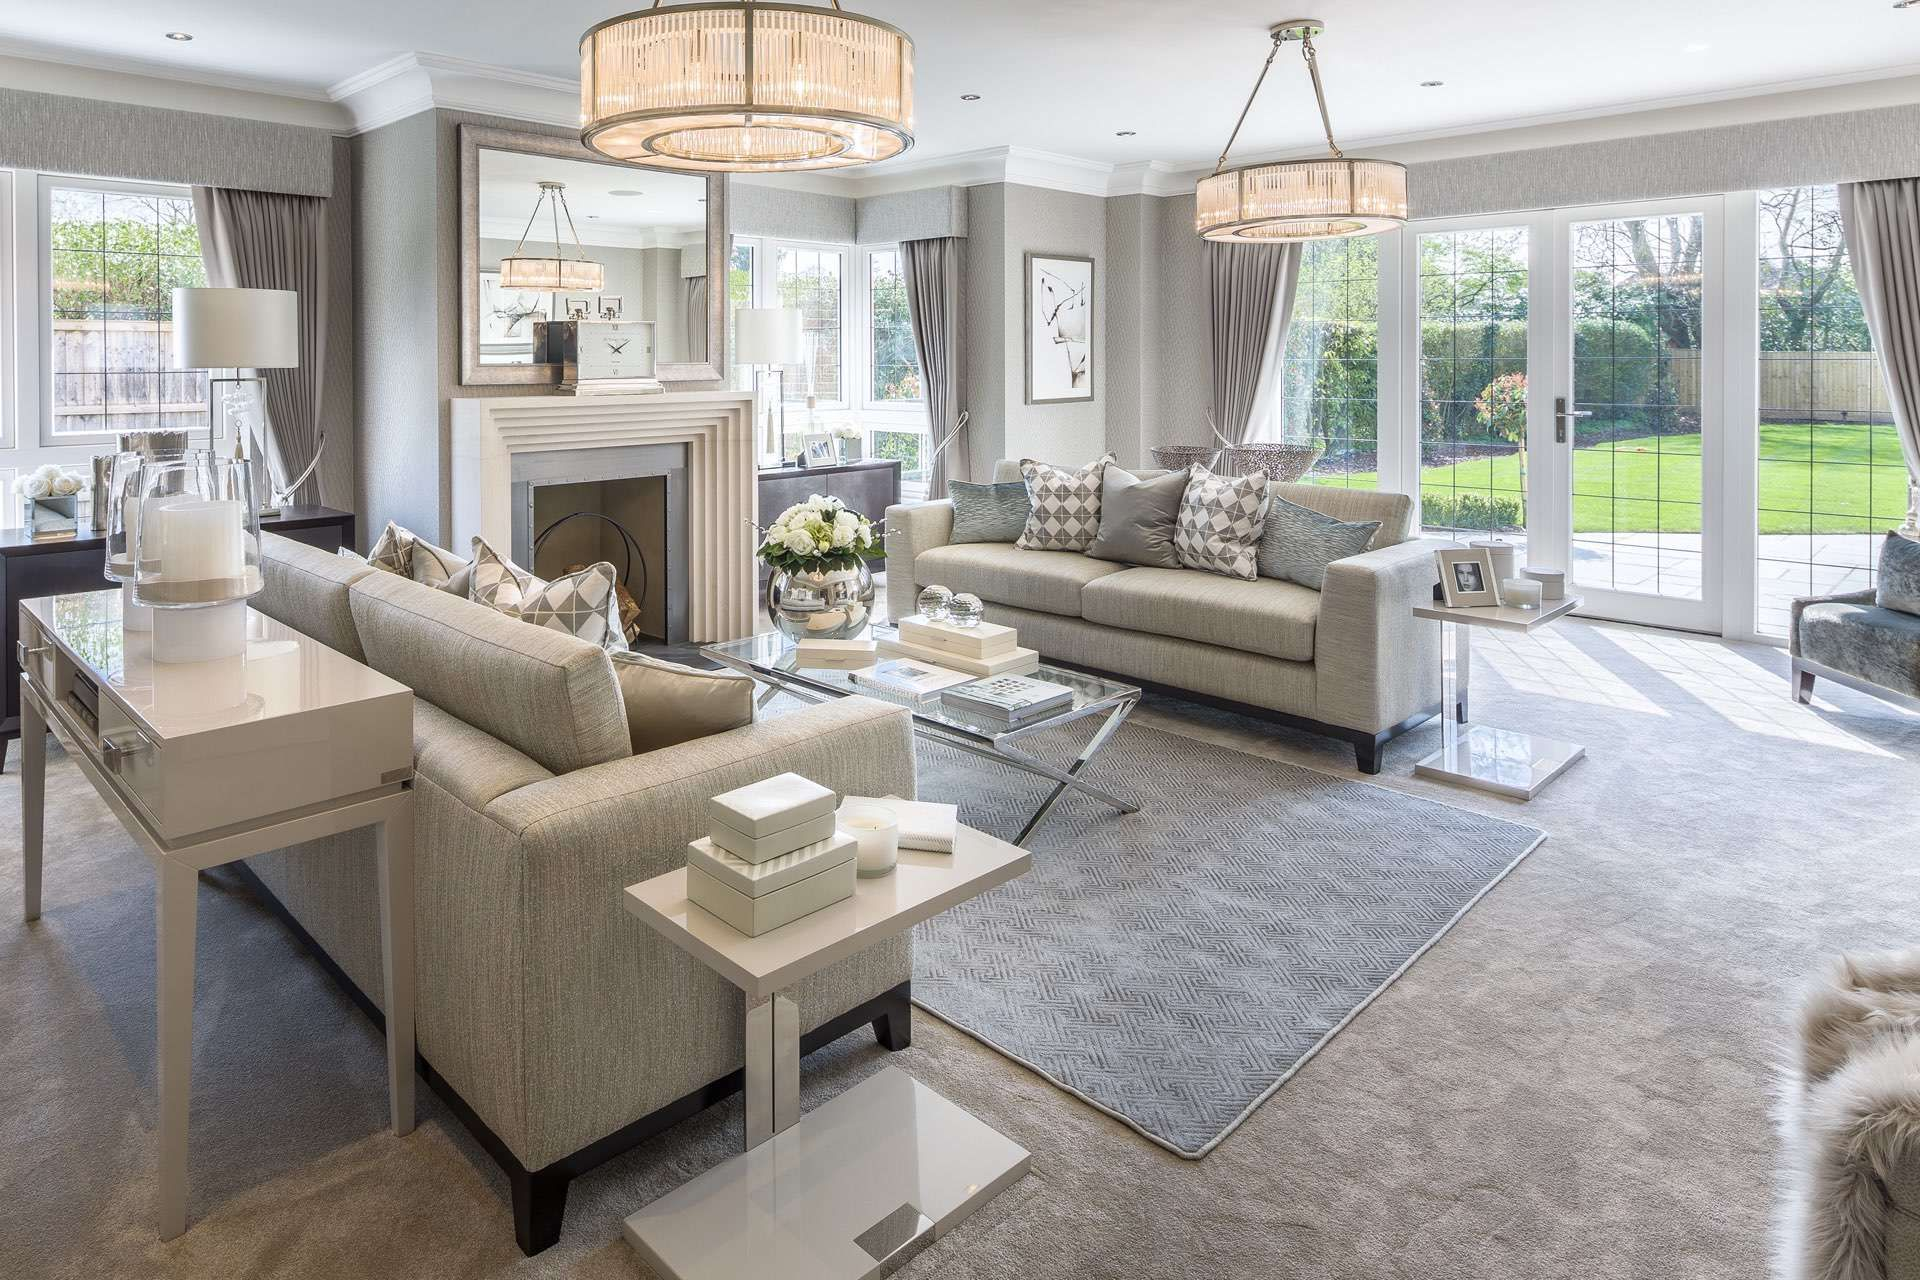 A luxurious welcoming and comfortable family home